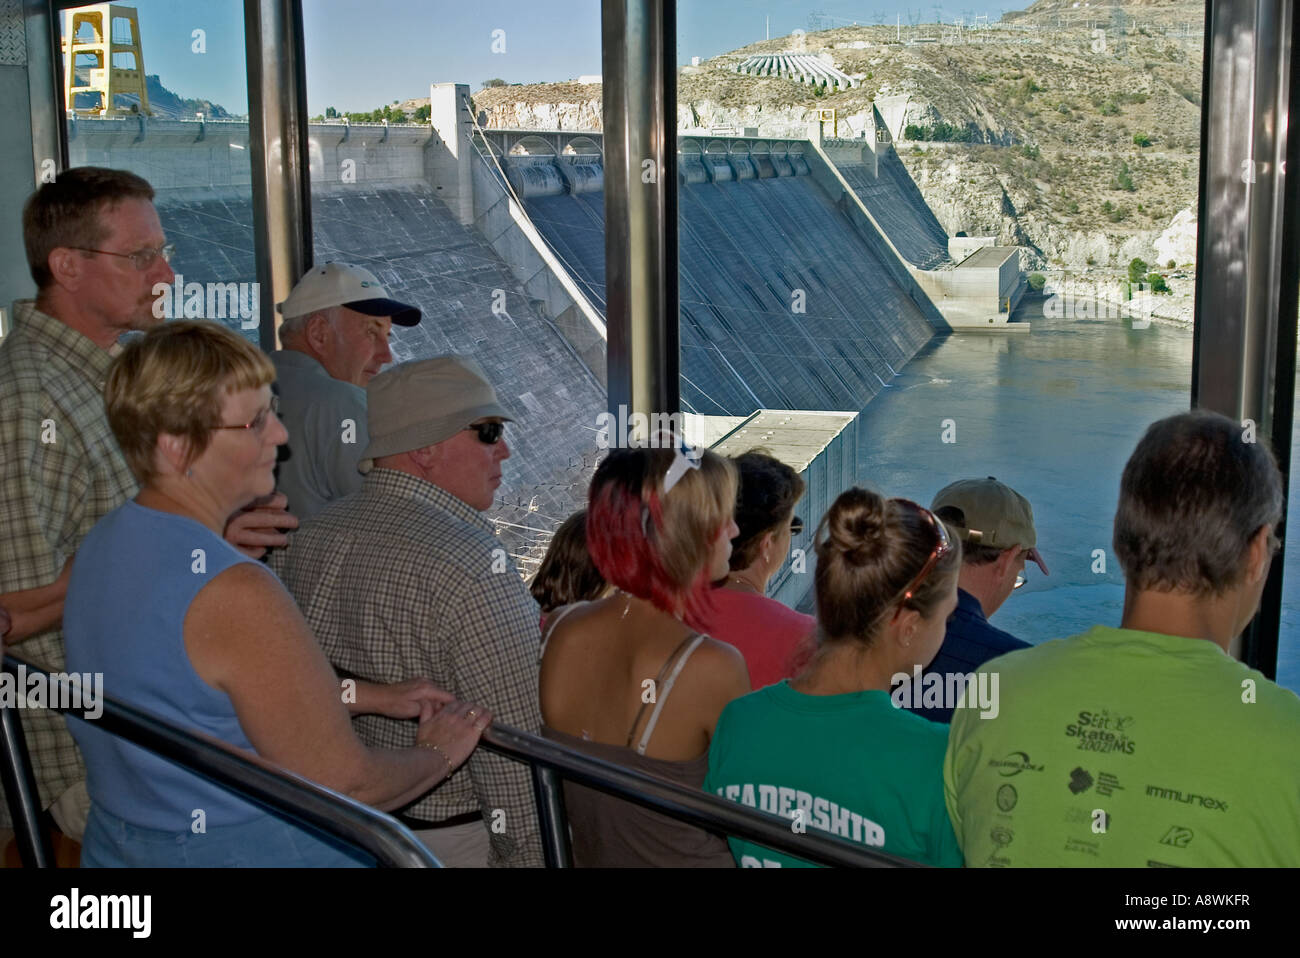 Usa washington grand coulee grand coulee dam face 3rd powerhouse usa washington grand coulee grand coulee dam face 3rd powerhouse tour 45 degree incline elevator 2006 publicscrutiny